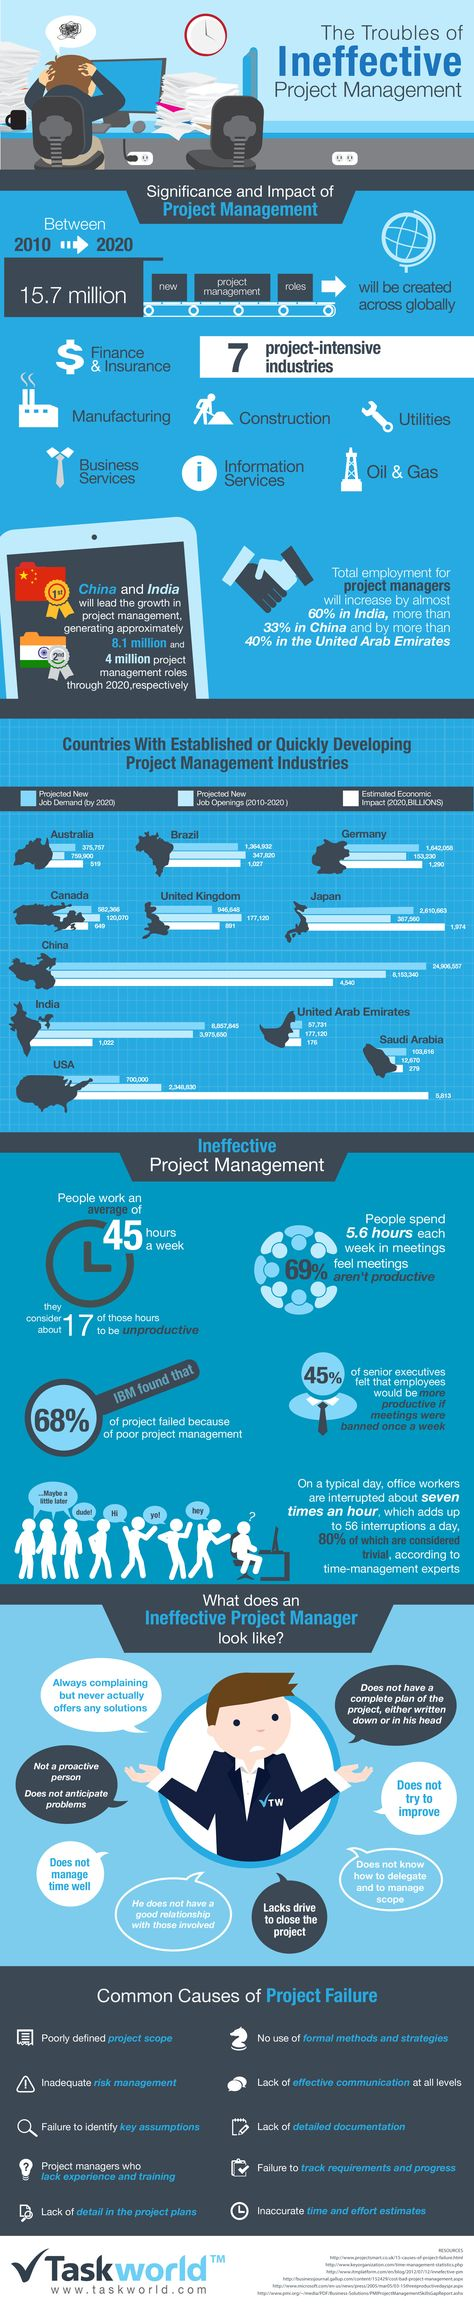 The Troubles of Ineffective Project Management [Infographic]